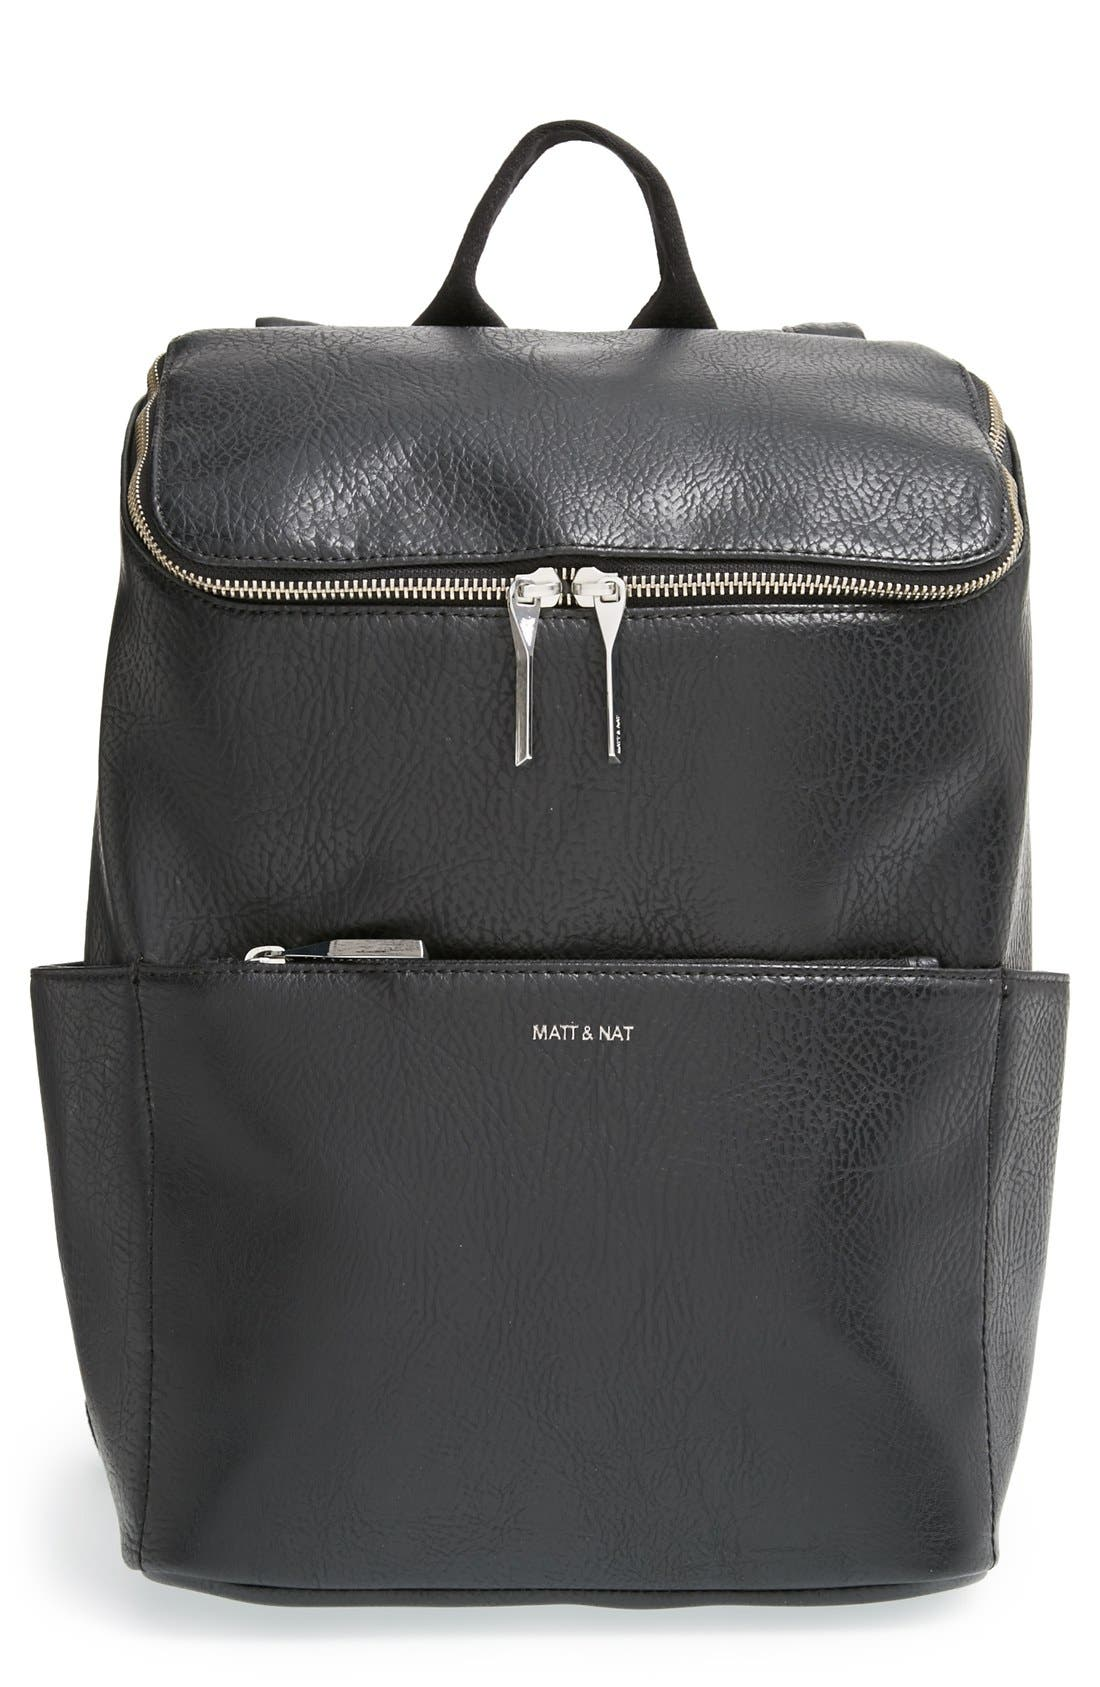 MATT & NAT 'Brave' Faux Leather Backpack